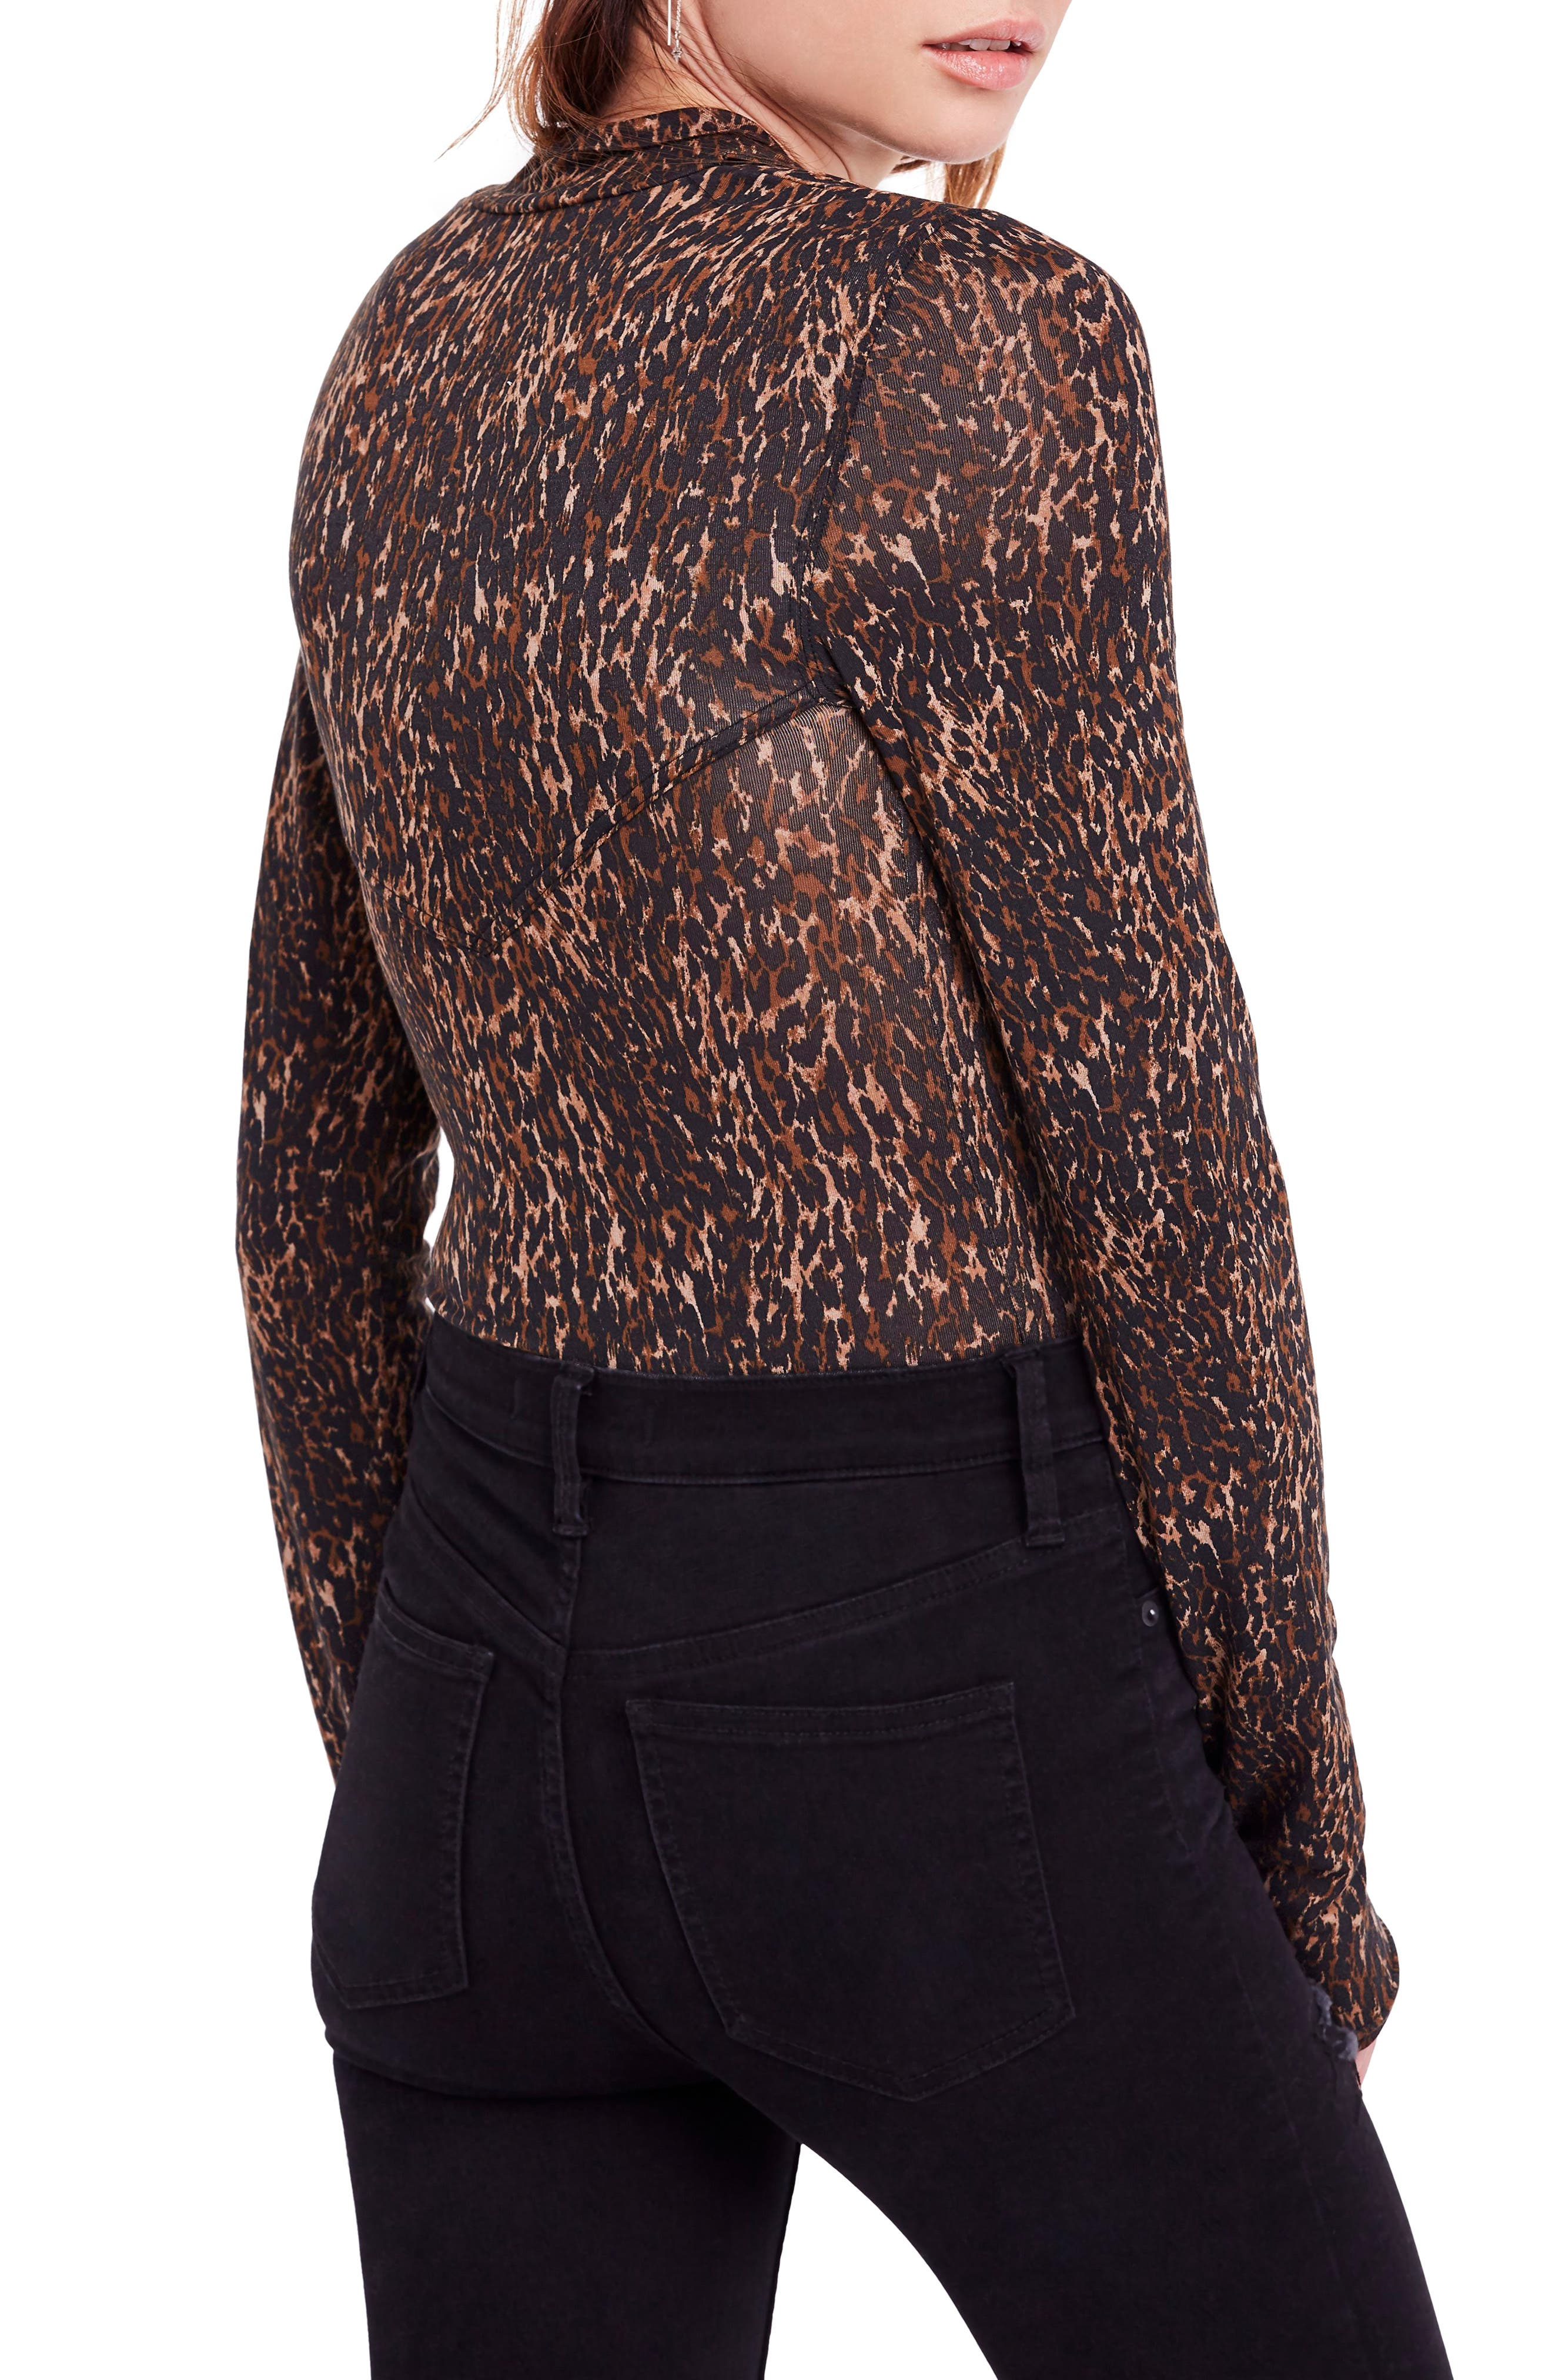 Wild Thing Leopard Print Top,                             Alternate thumbnail 2, color,                             214